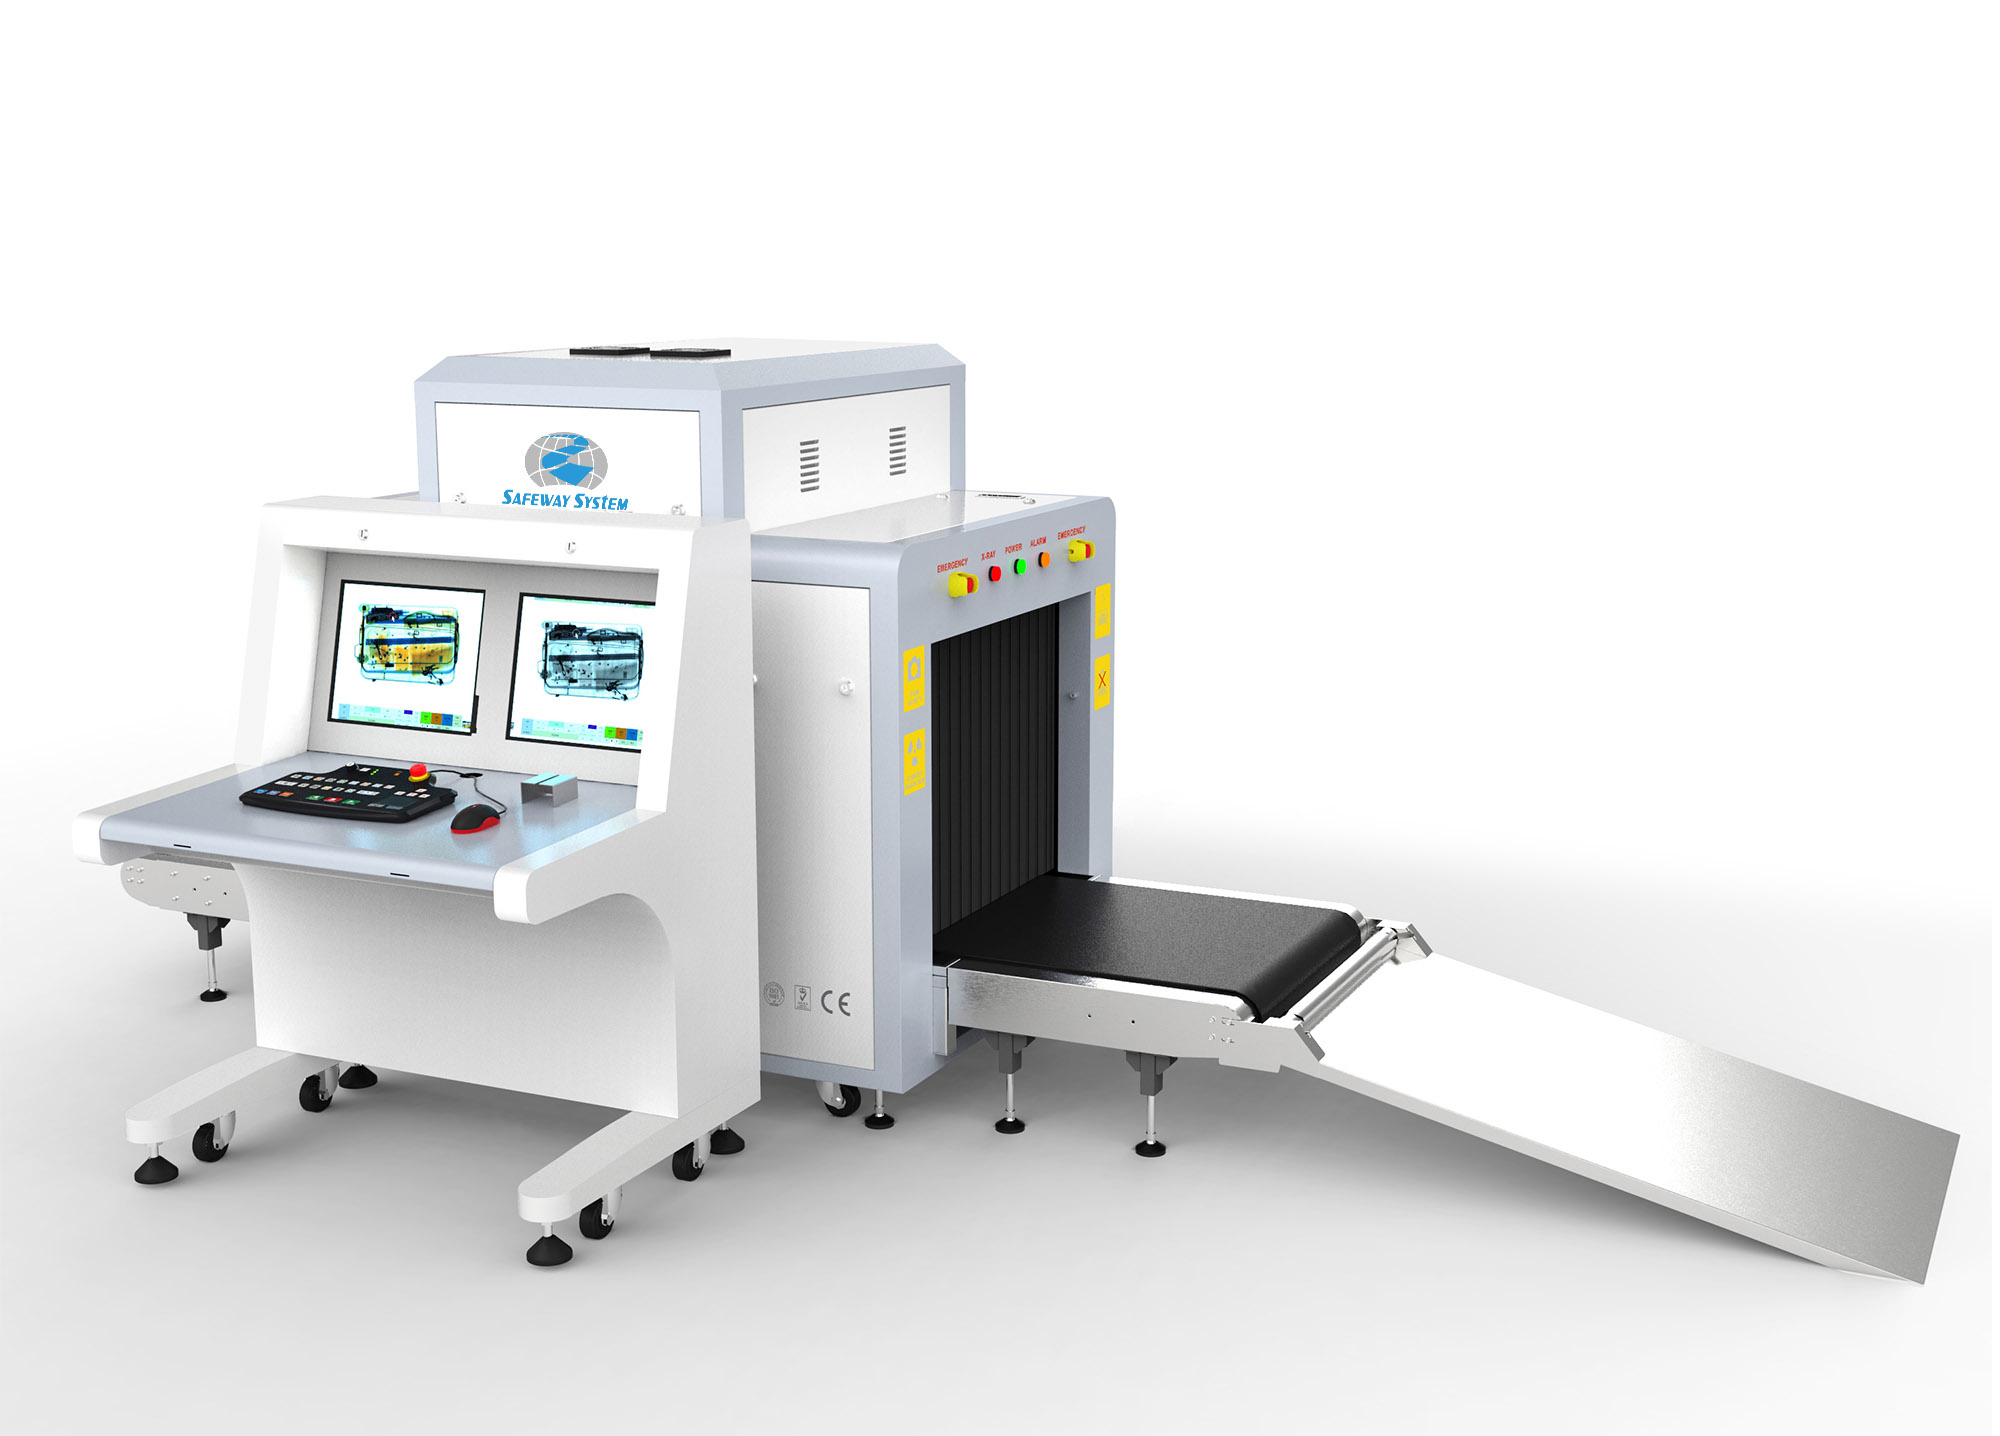 Security X Ray Machine for Baggage Inspection - FDA Approved Biggest Factory